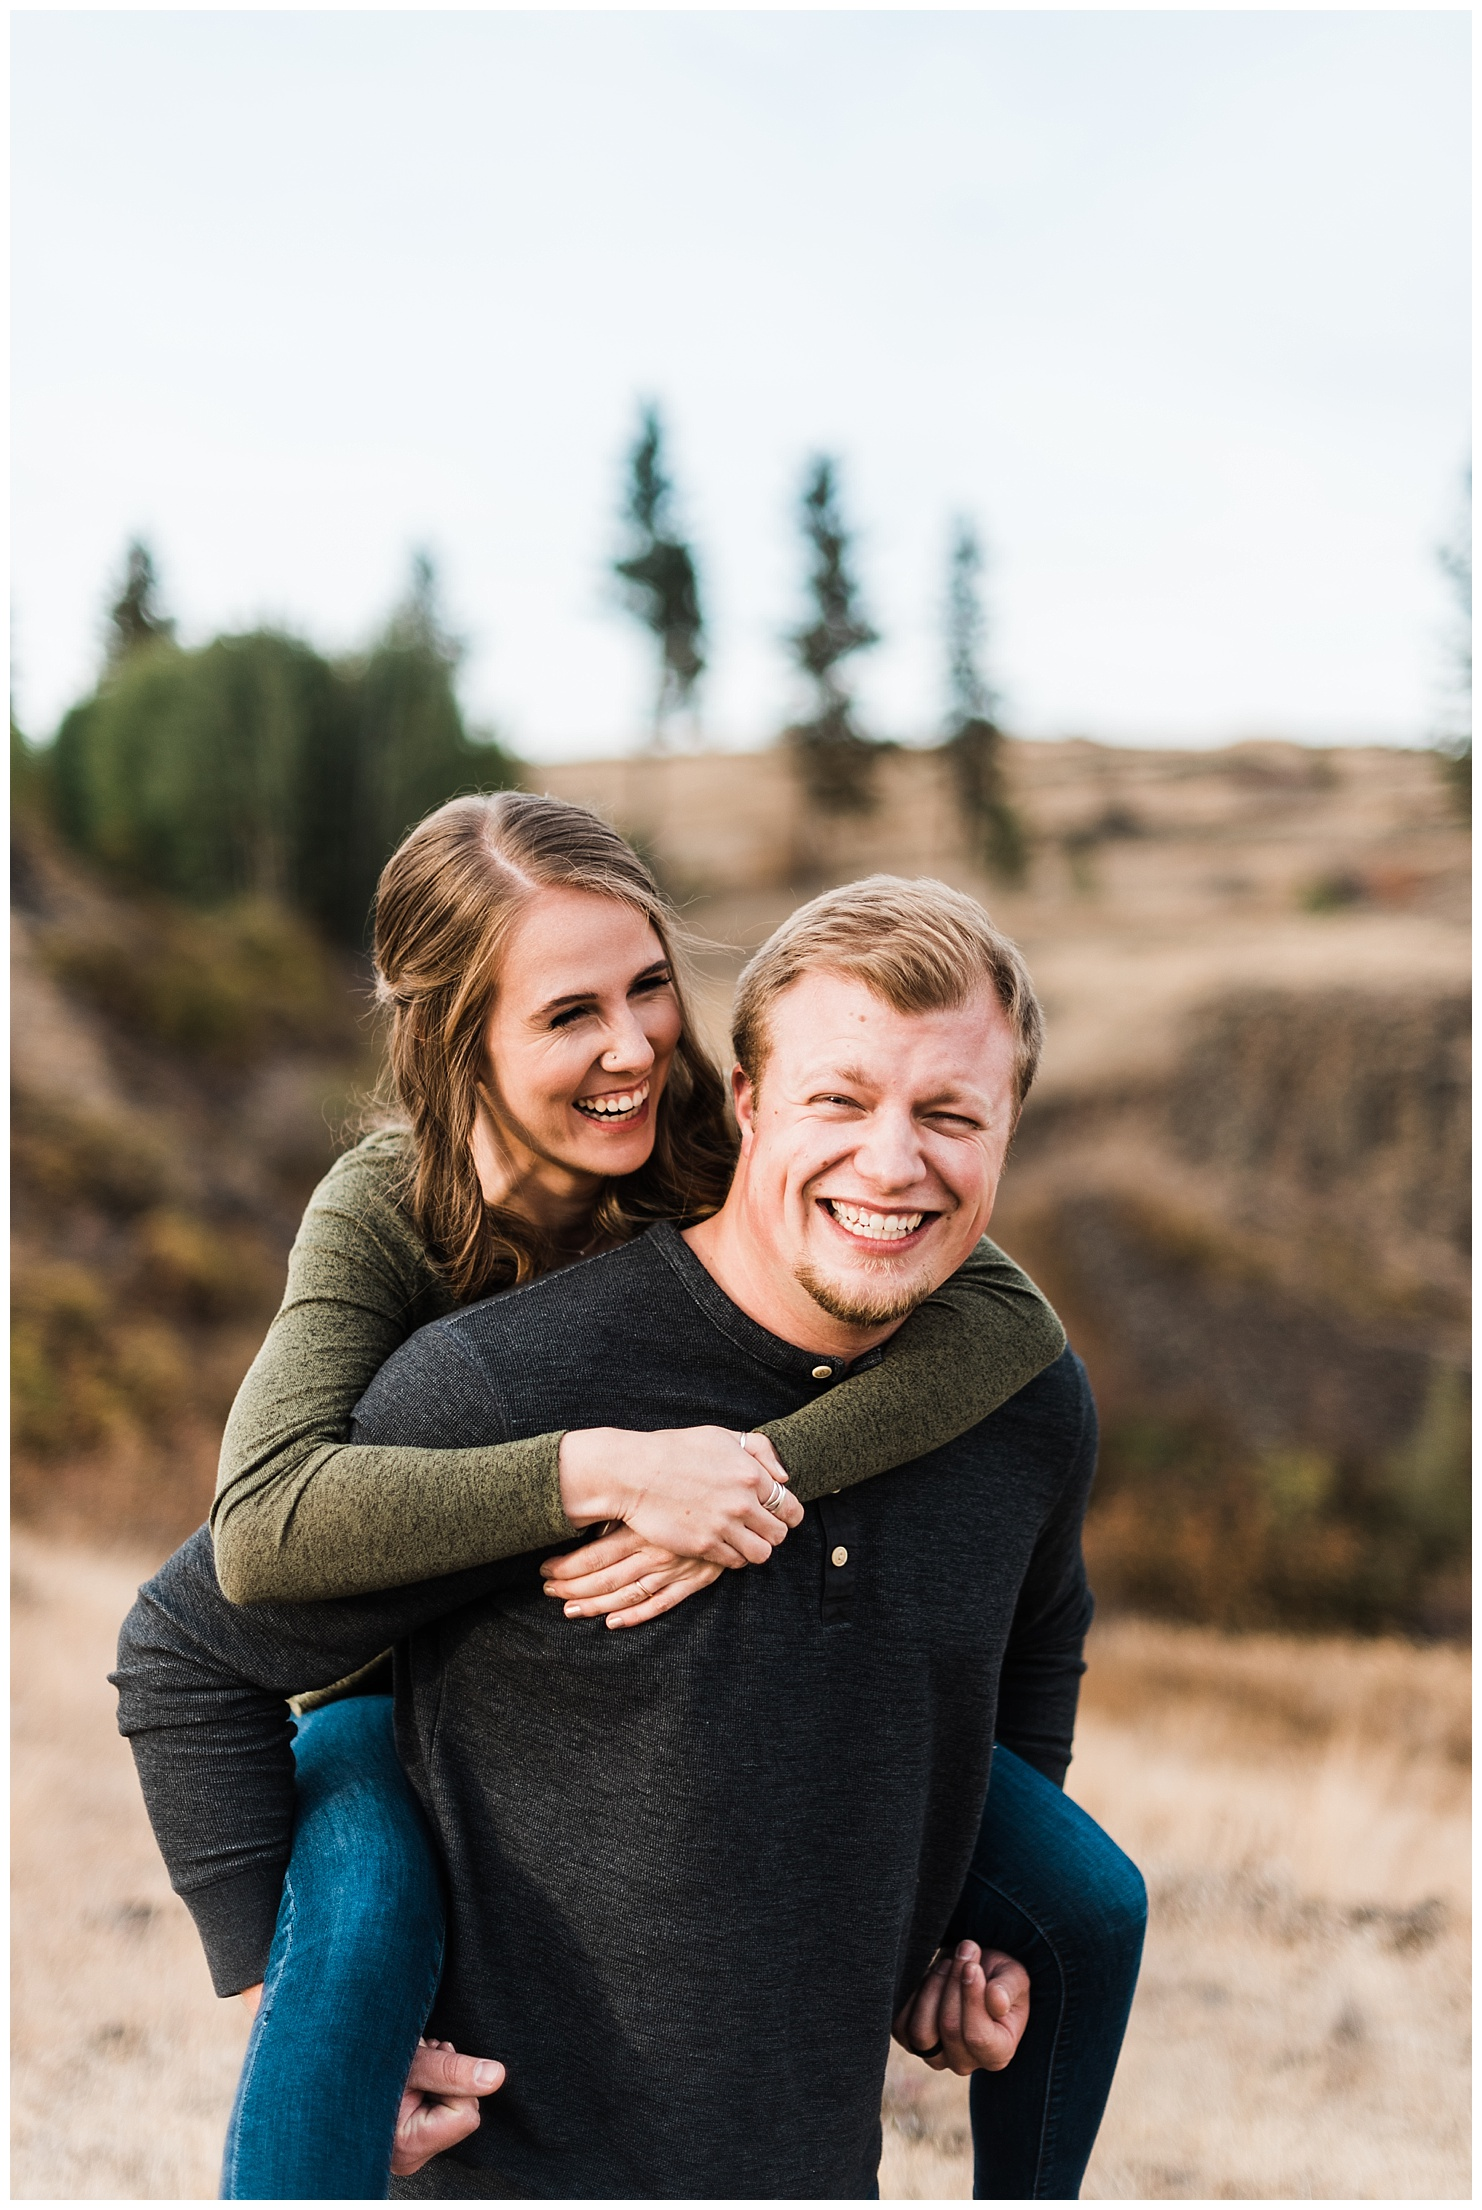 Adventure engagement session at Hog Lake in Cheney Washington by Forthright Photo